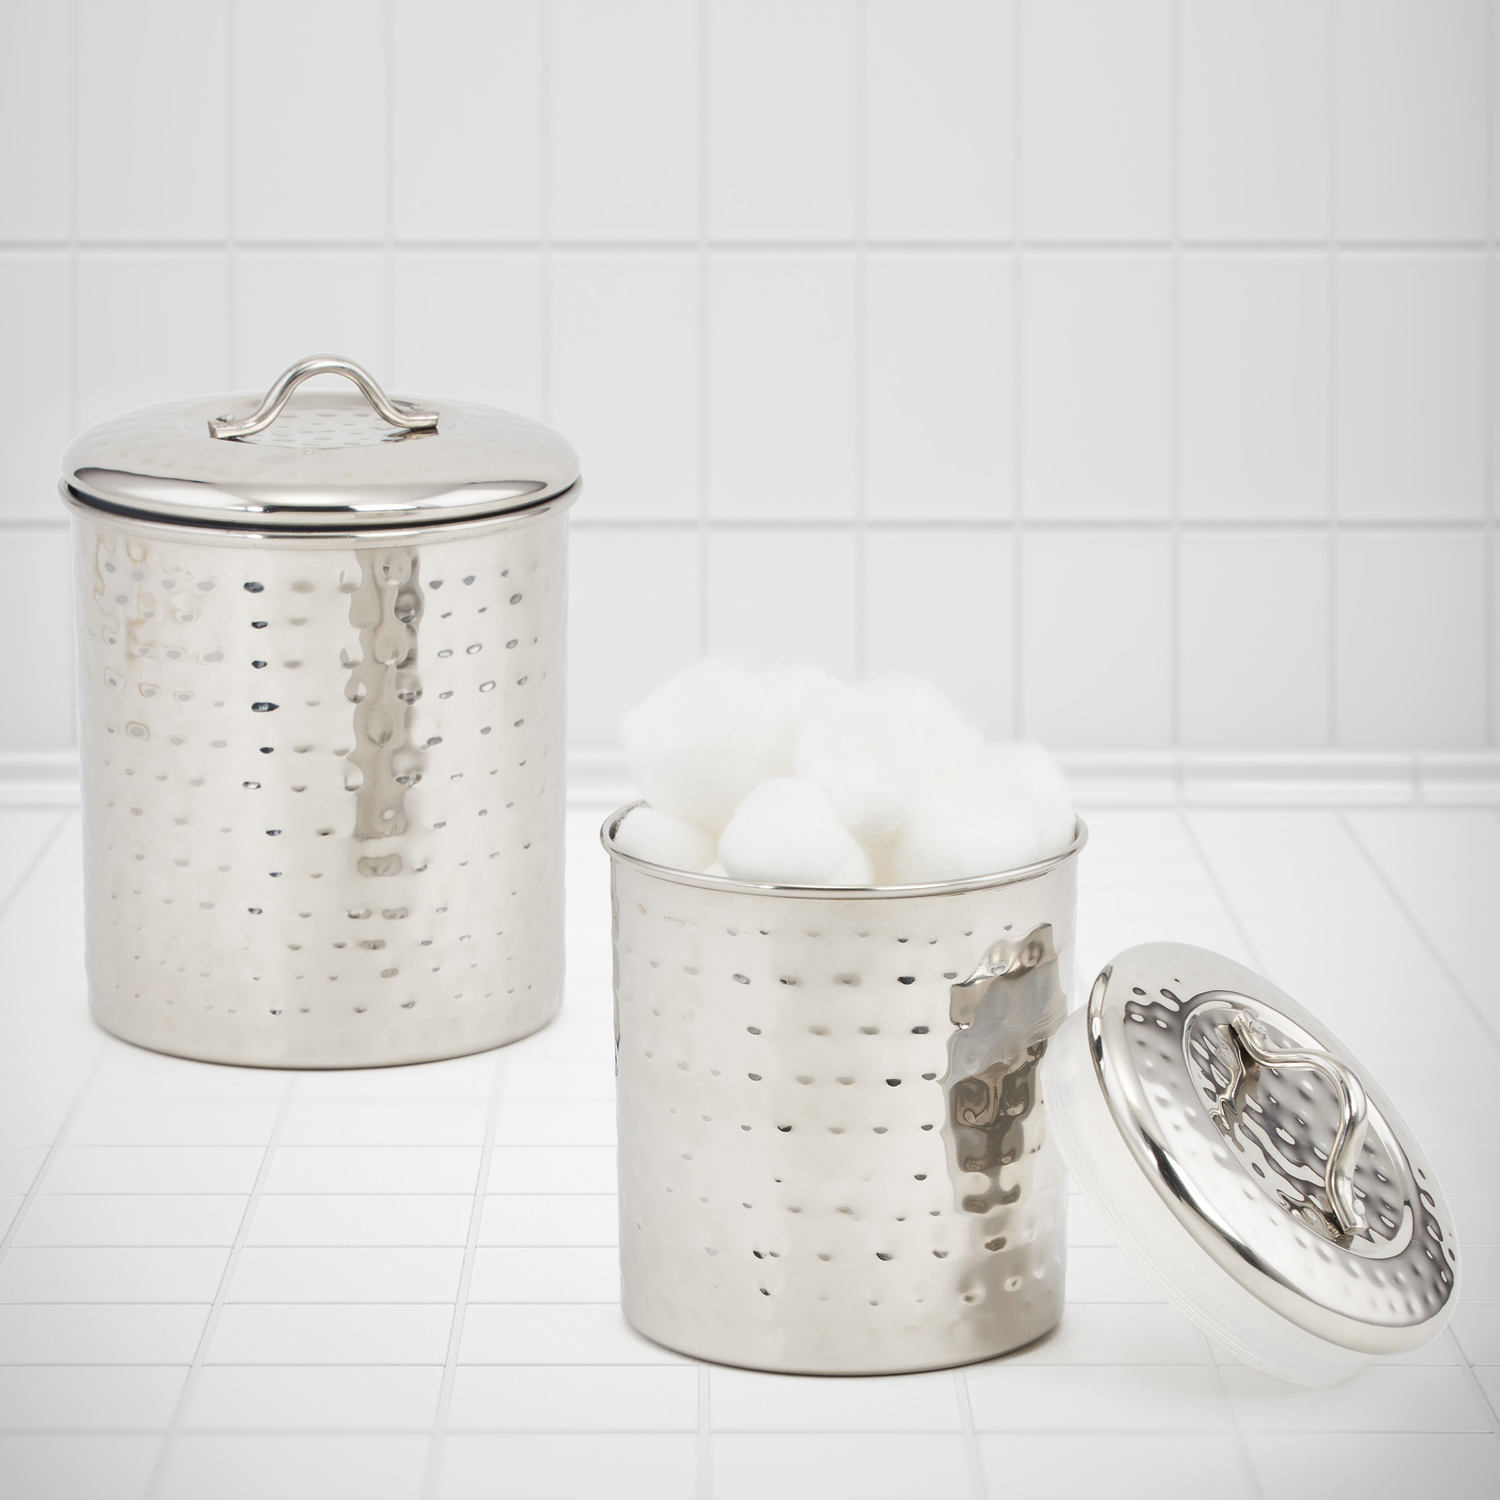 Stainless Steel Hammered Canisters, Set of 2